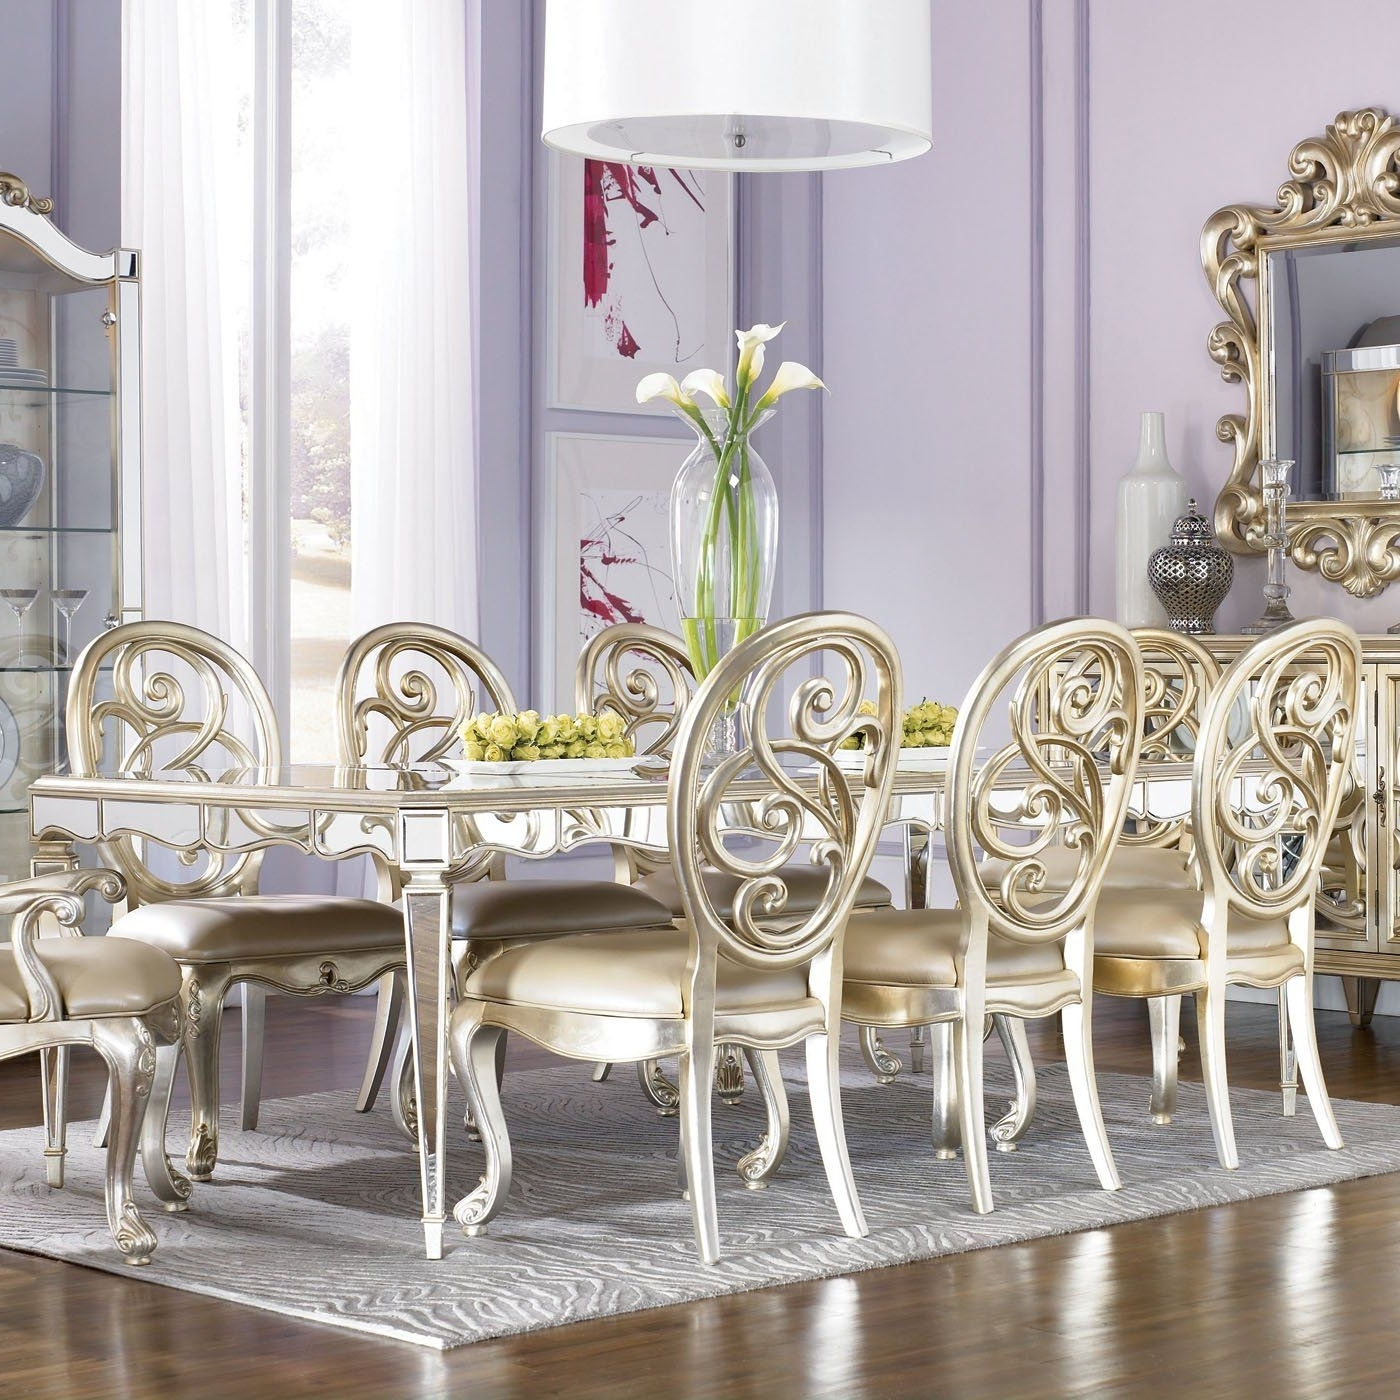 Popular Antique Mirror Dining Tables Intended For American Drew 908 760 Jessica Mcclintock Couture Antique Mirror Leg (View 16 of 25)